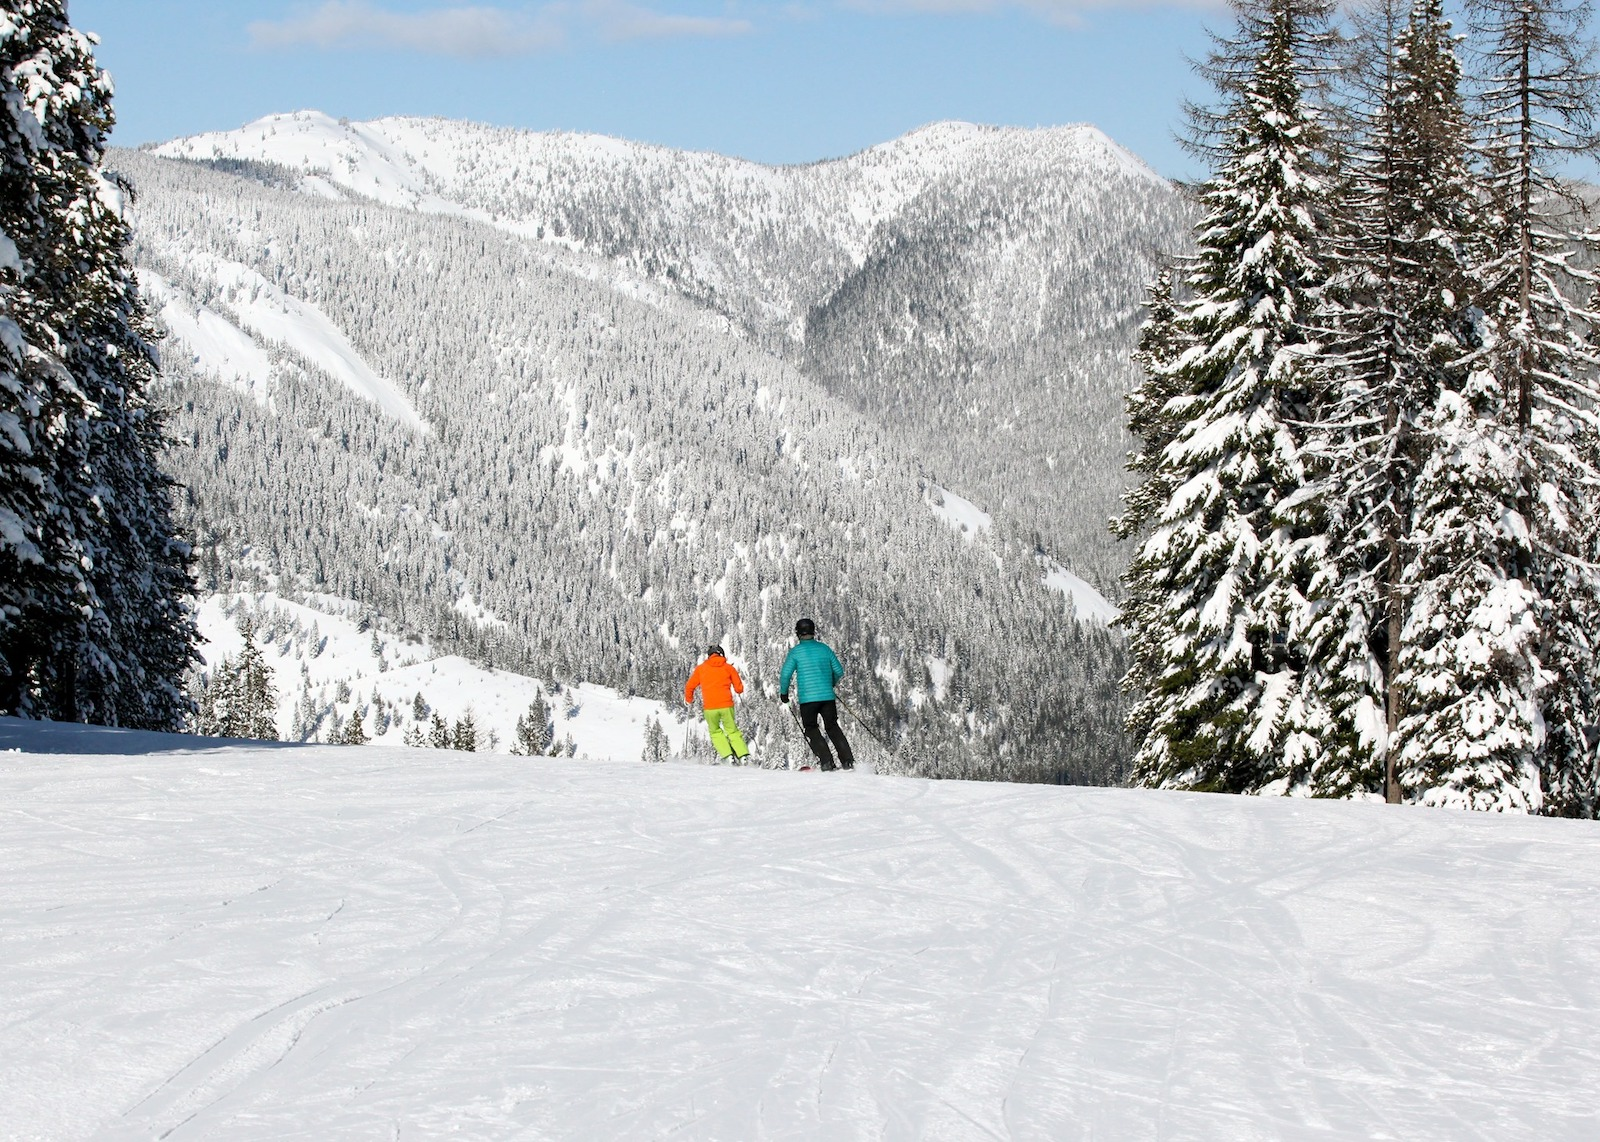 Image of 2 skiers in orange, green and teal, going down the slopes at Lookout Pass Ski Area in Idaho